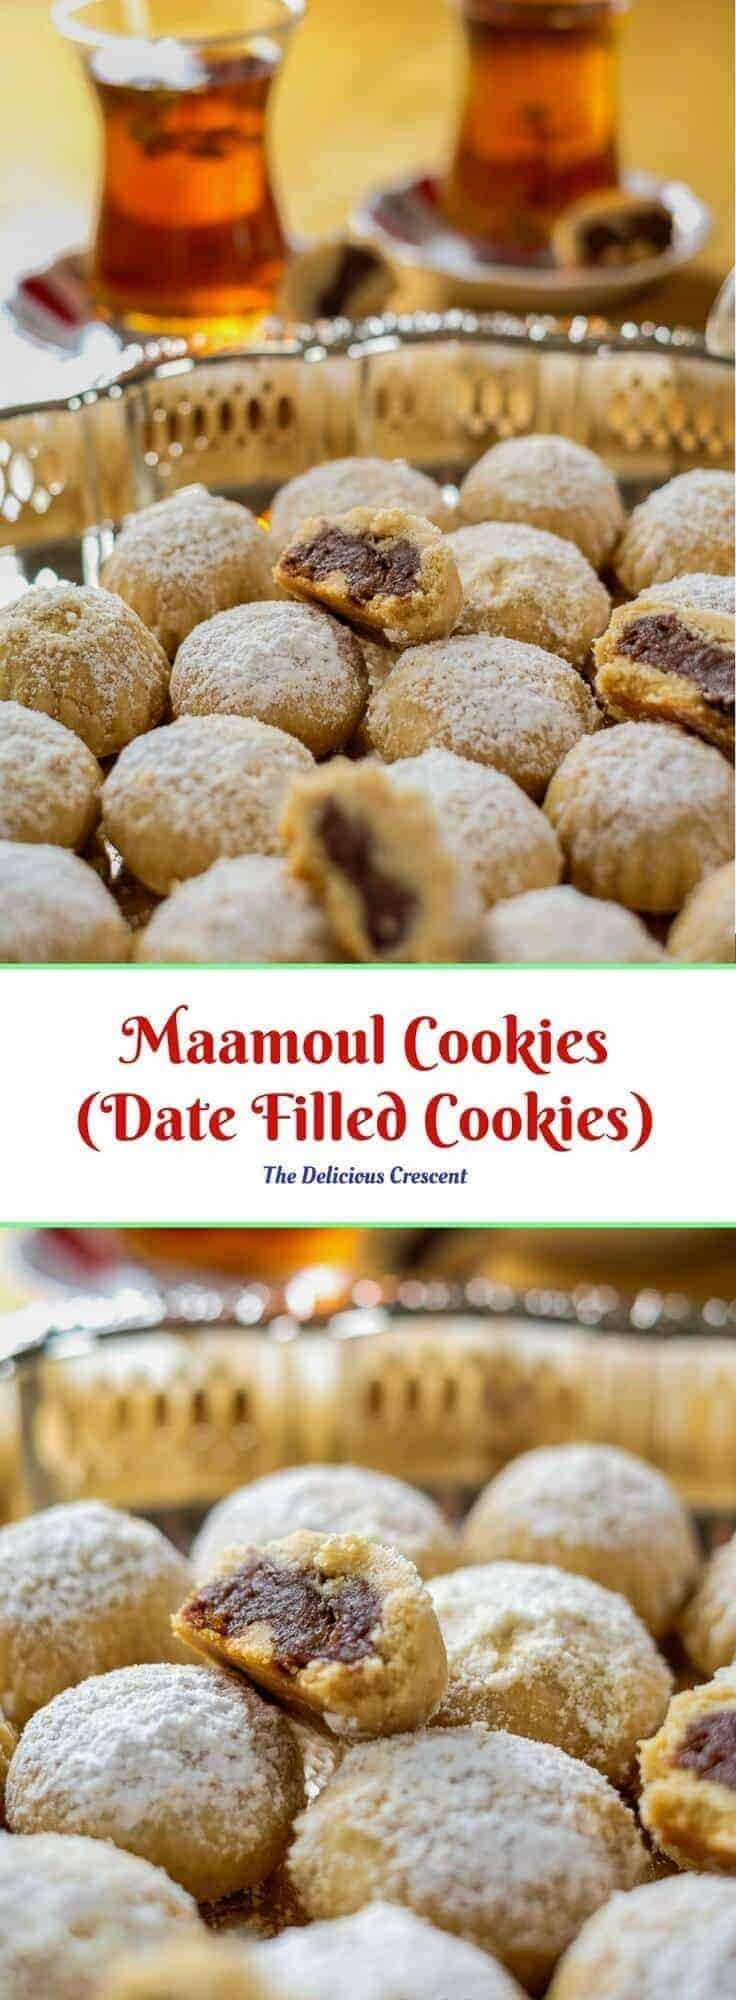 These famous Maamoul cookies will melt in your mouth and are utterly scrumptious. Naturally sweetened with dates, they have minimal added sugar.